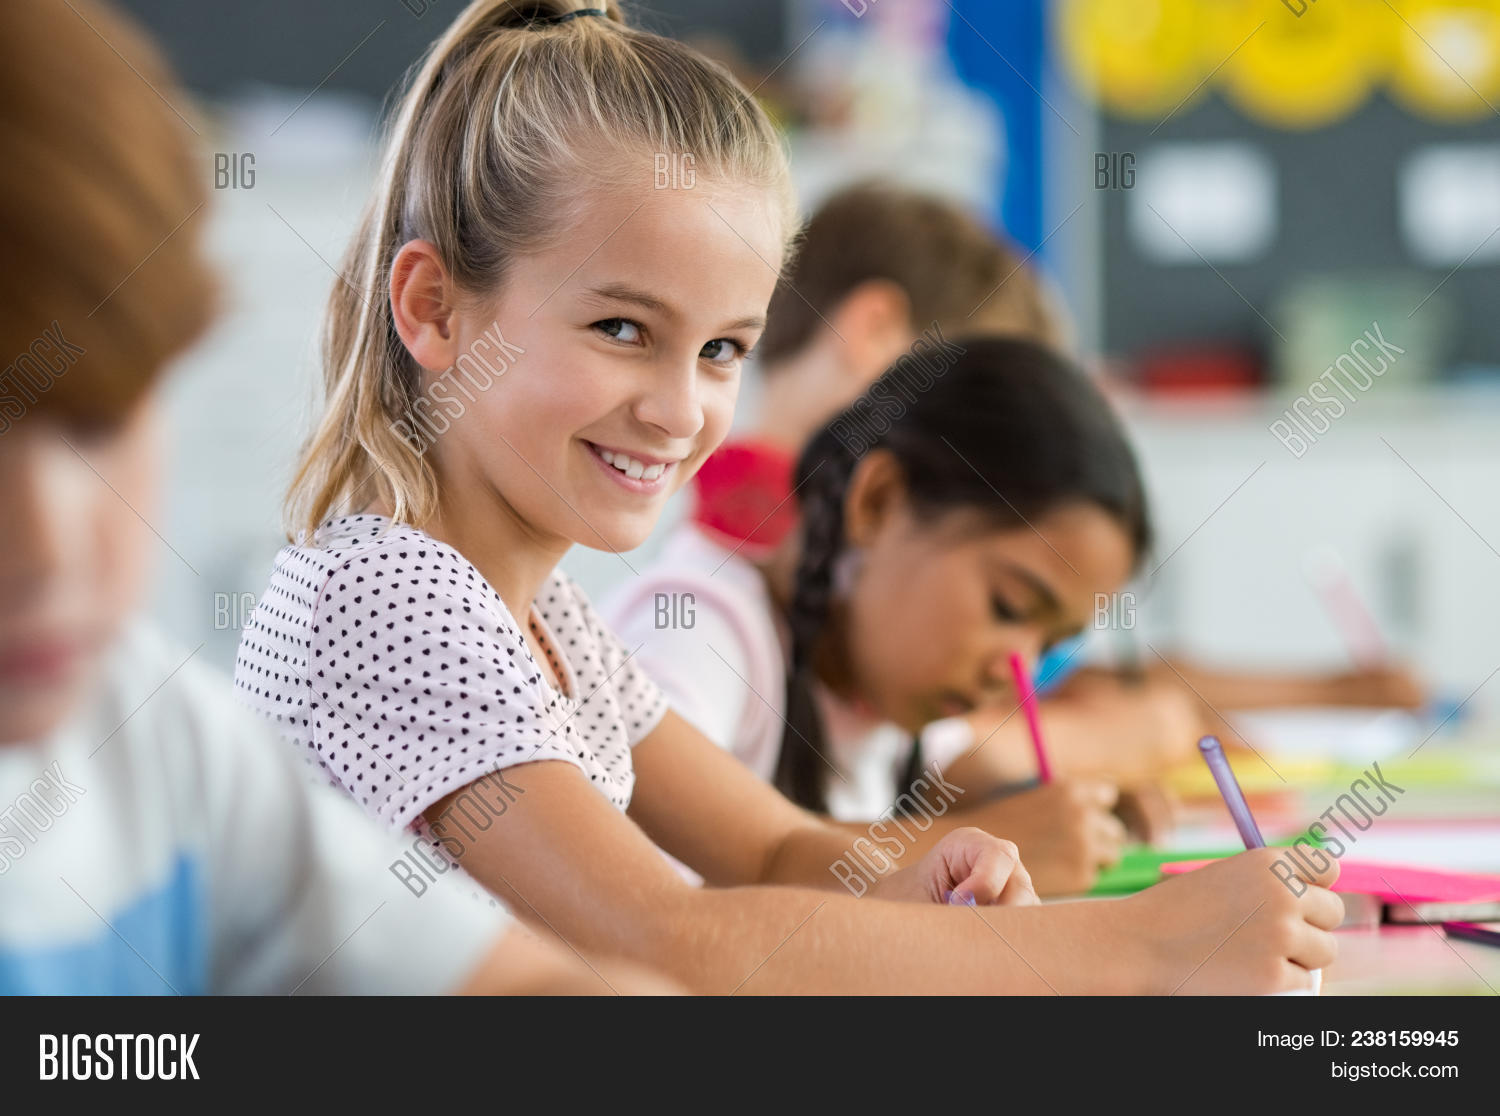 beautiful,boy,caucasian,cheerful,child,childhood,children,class,classmate,classroom,classwork,cute,desk,drawing,education,elementary,elementary students,exam,face,girl,happy,kid,kids,knowledge,learn,lesson,library,little,looking,looking at camera,people,portrait,pretty,primary,pupil,scholar,school,schoolchild,sitting,smile,student,study,studying,write,young